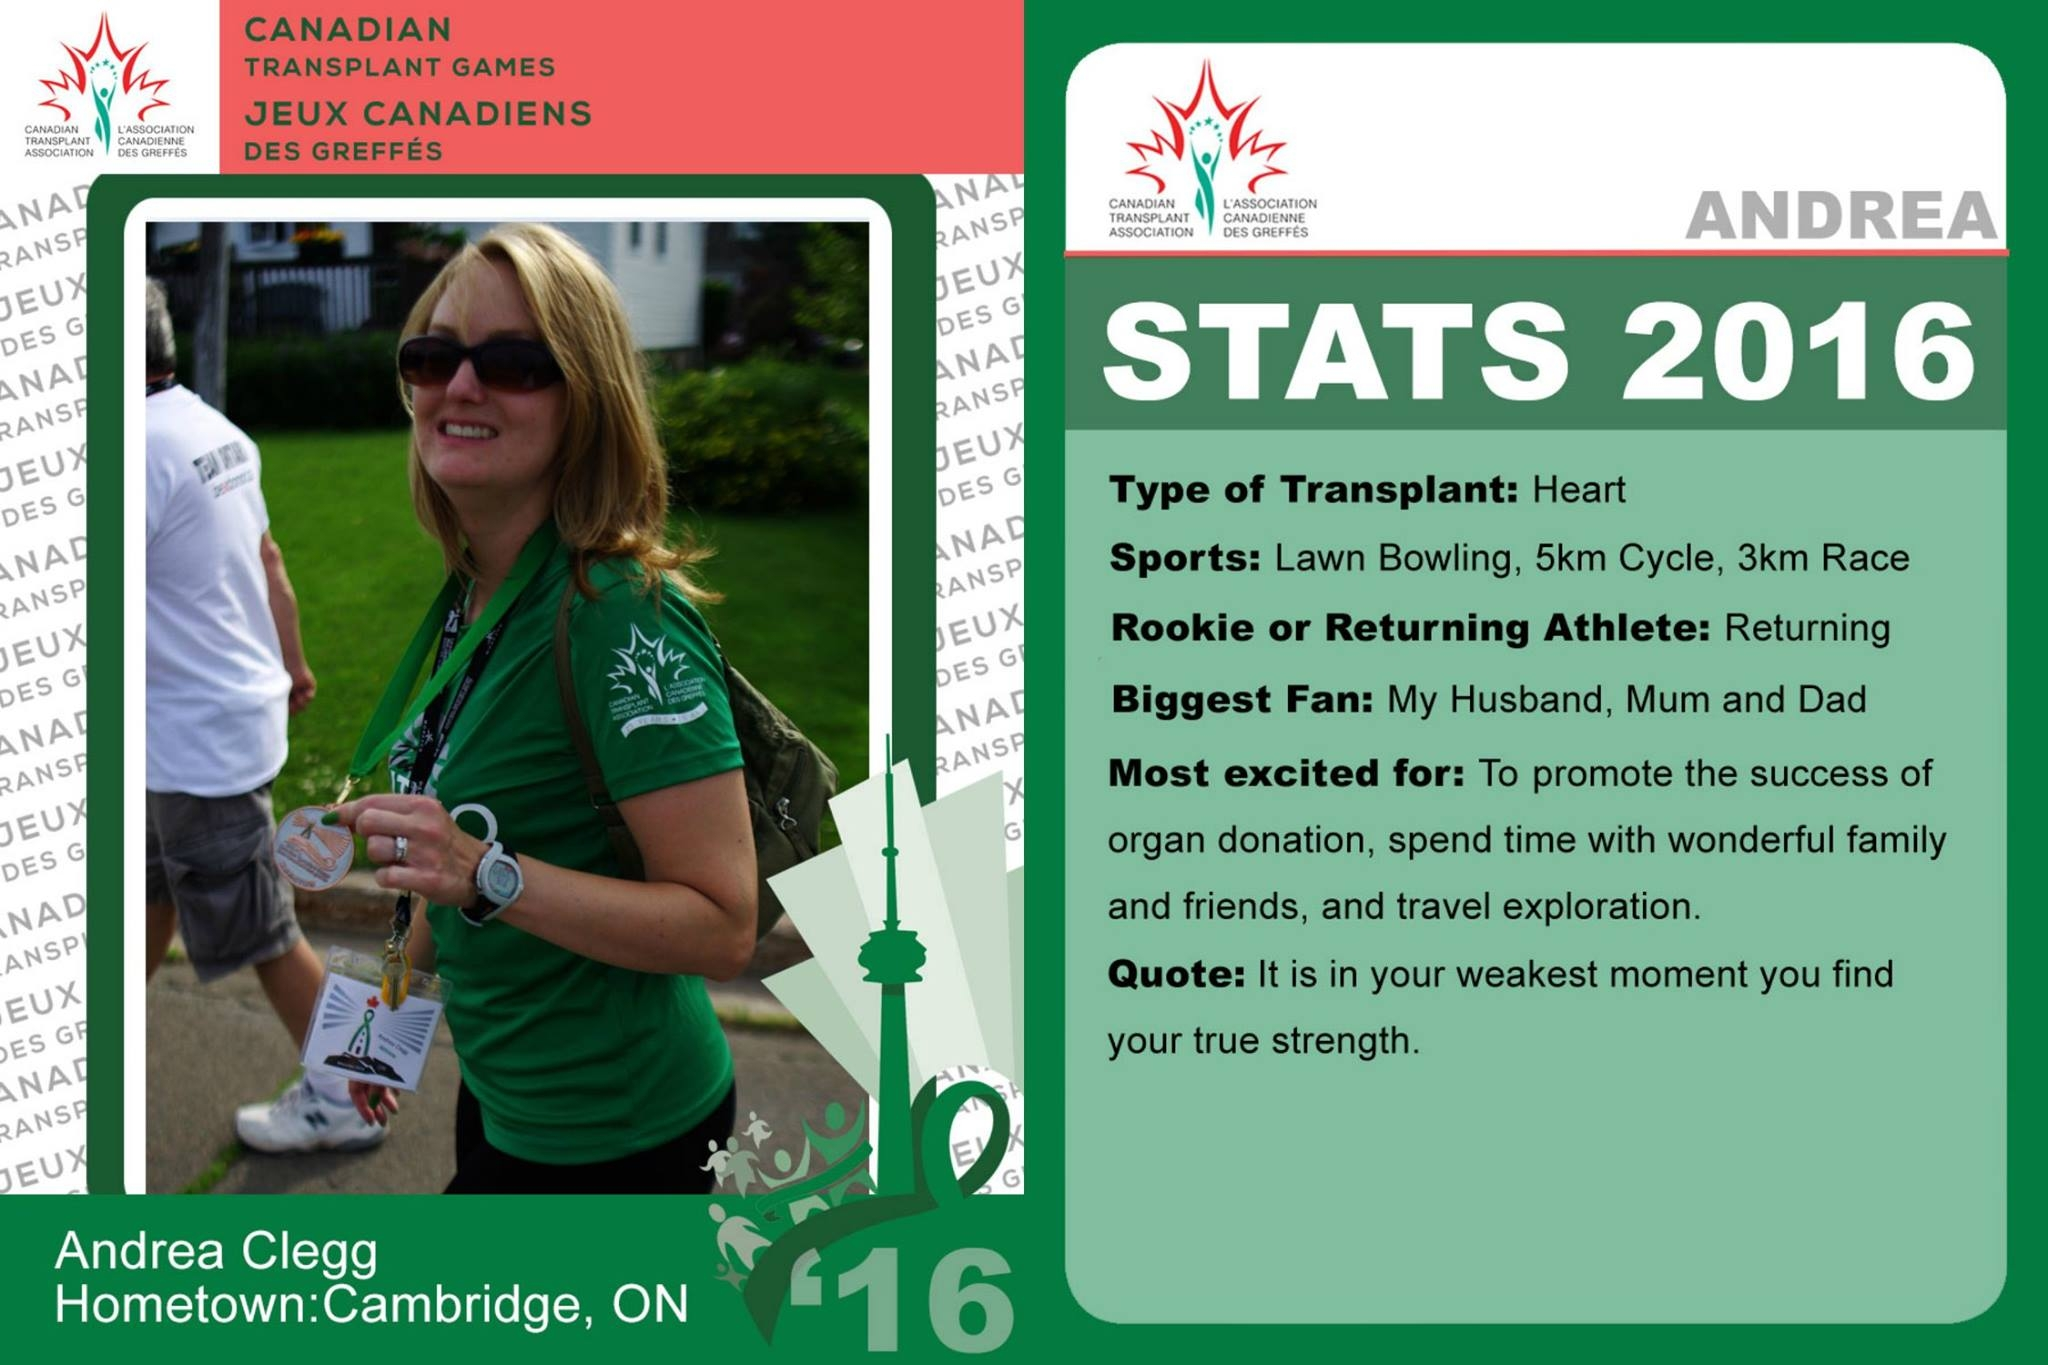 Celebrating the Gift of Life at the 2016 Canadian Transplant Games